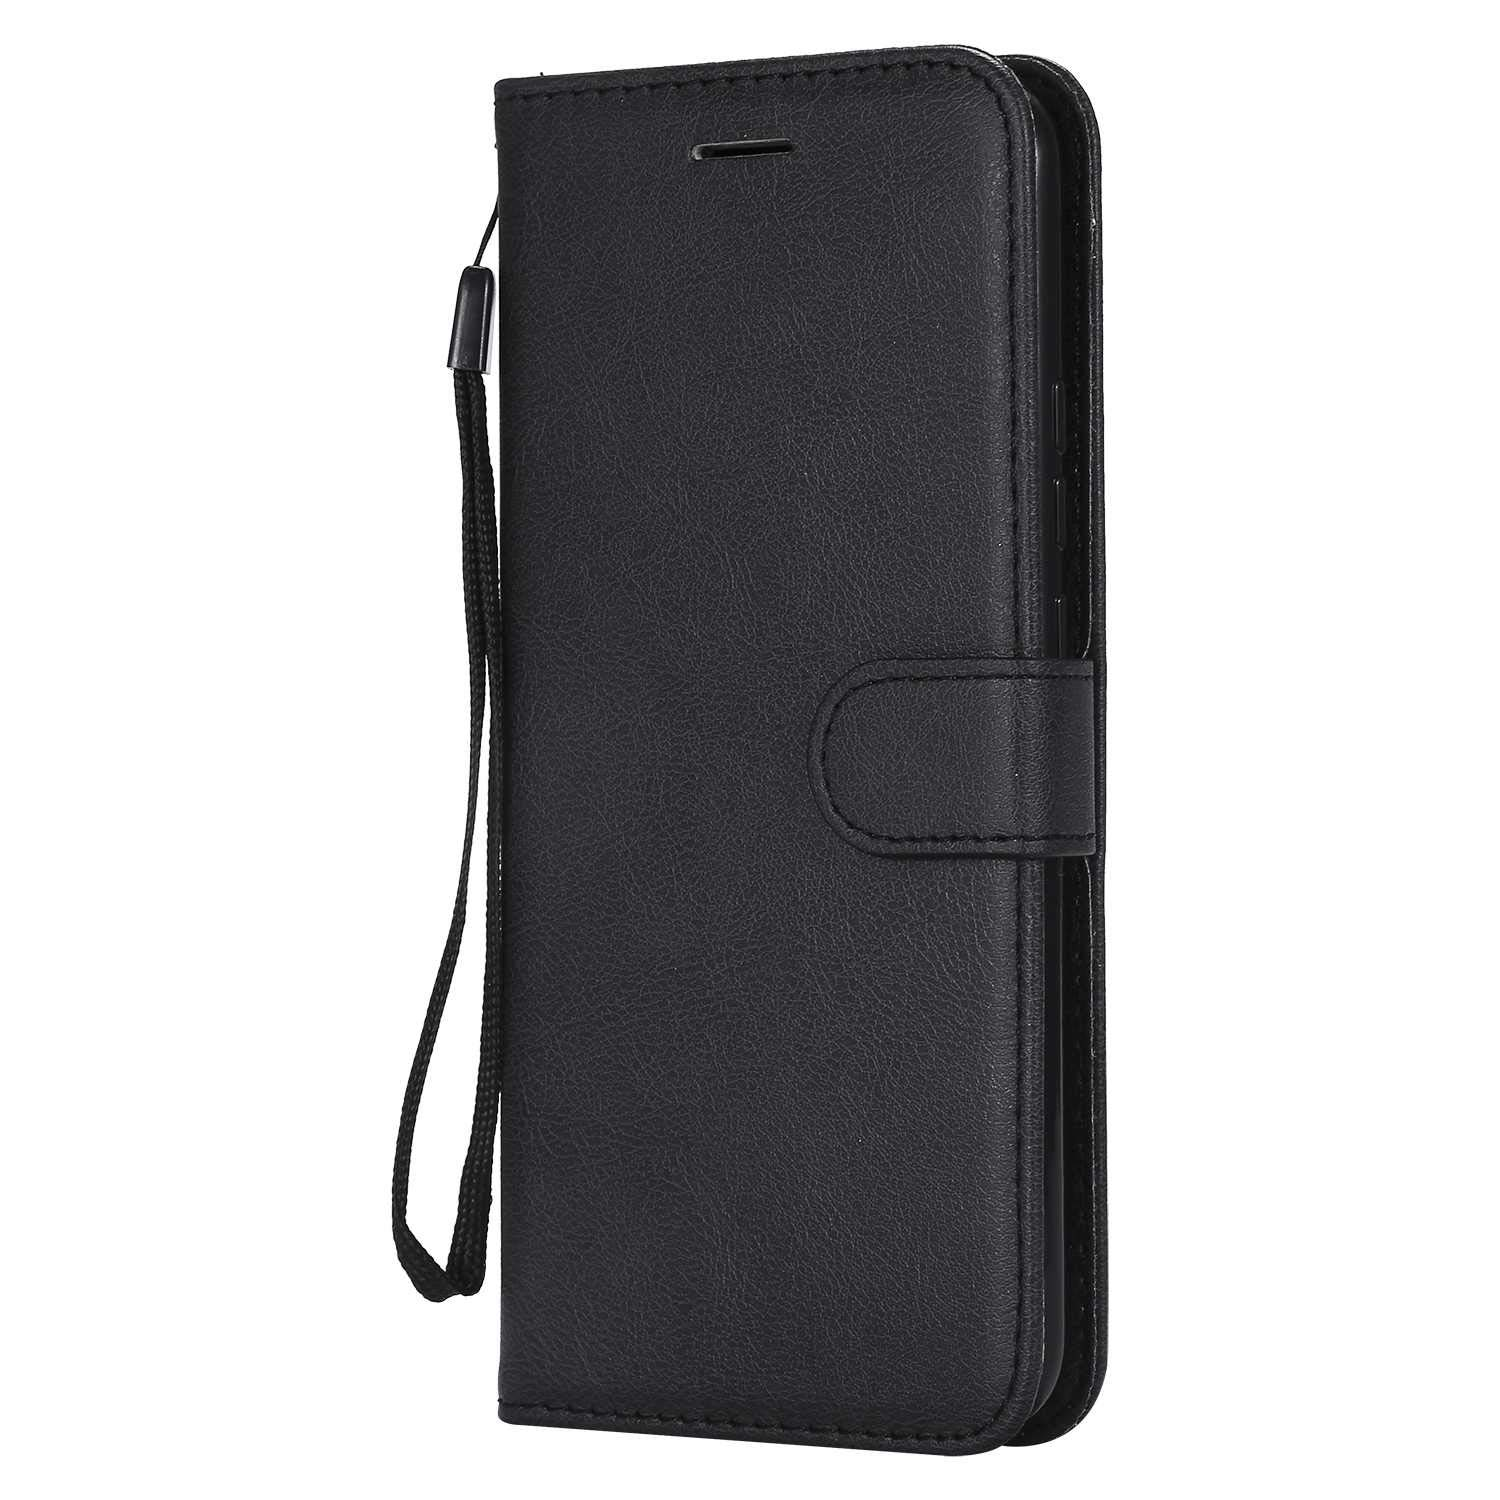 Huawei Mate 20 Lite Wallet Case, UNEXTATI Leather Flip Case with Magnetic Closure and Card Holders, Anti-Shock Bumper Cover for Huawei Mate 20 Lite (Black #2)